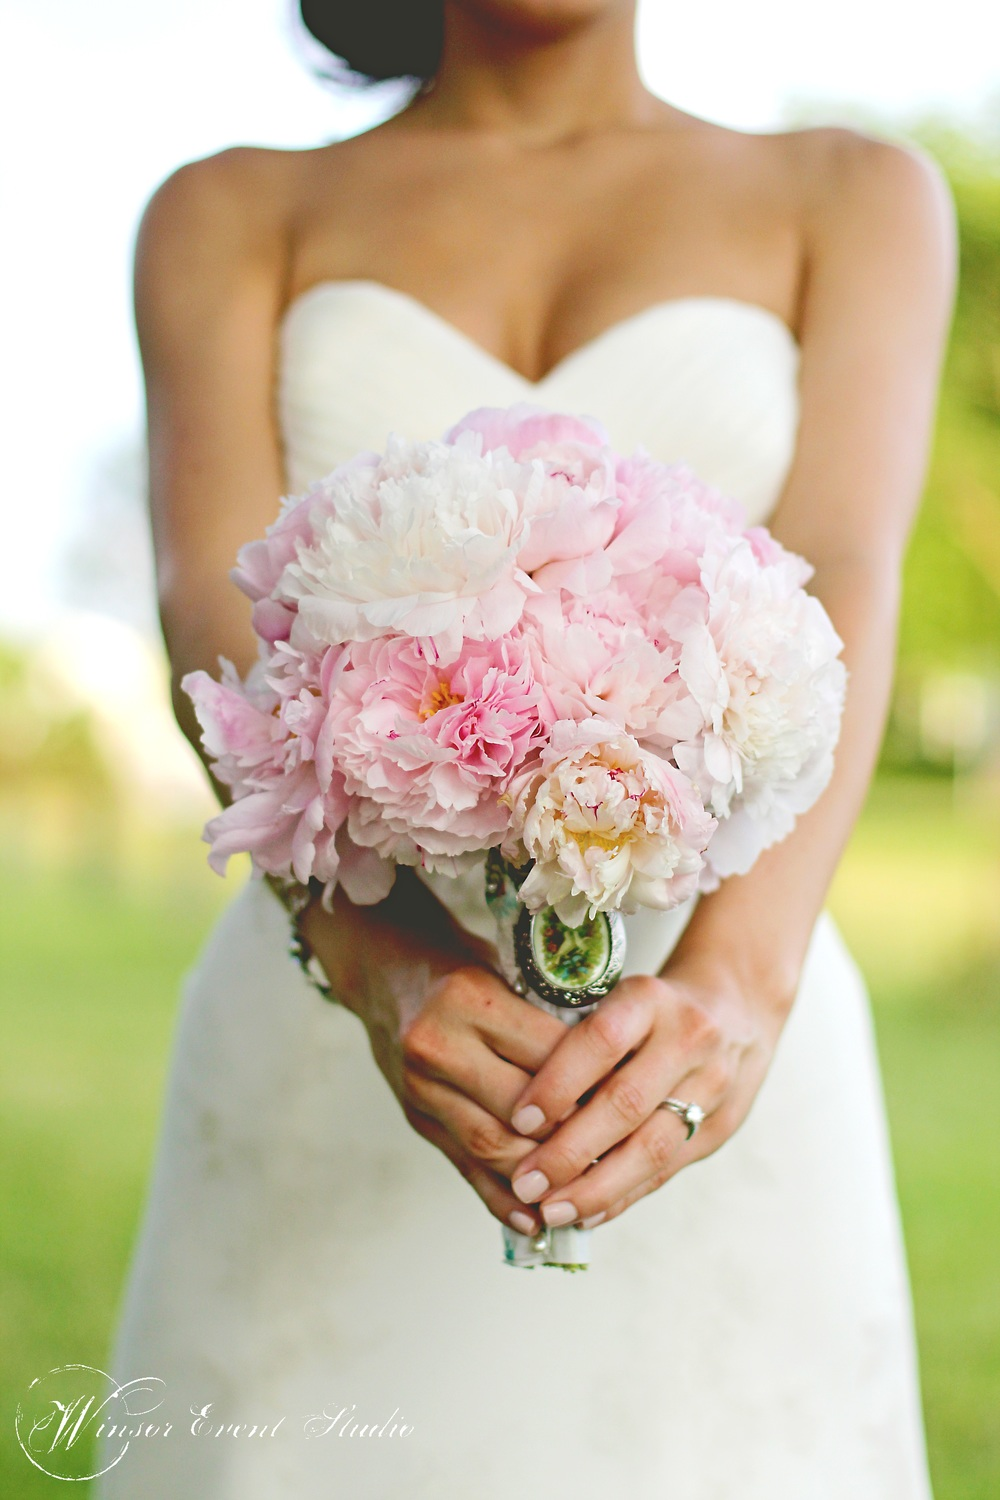 The bride carried a bouquet of blush and ivory peonies accented with a vintage brooch